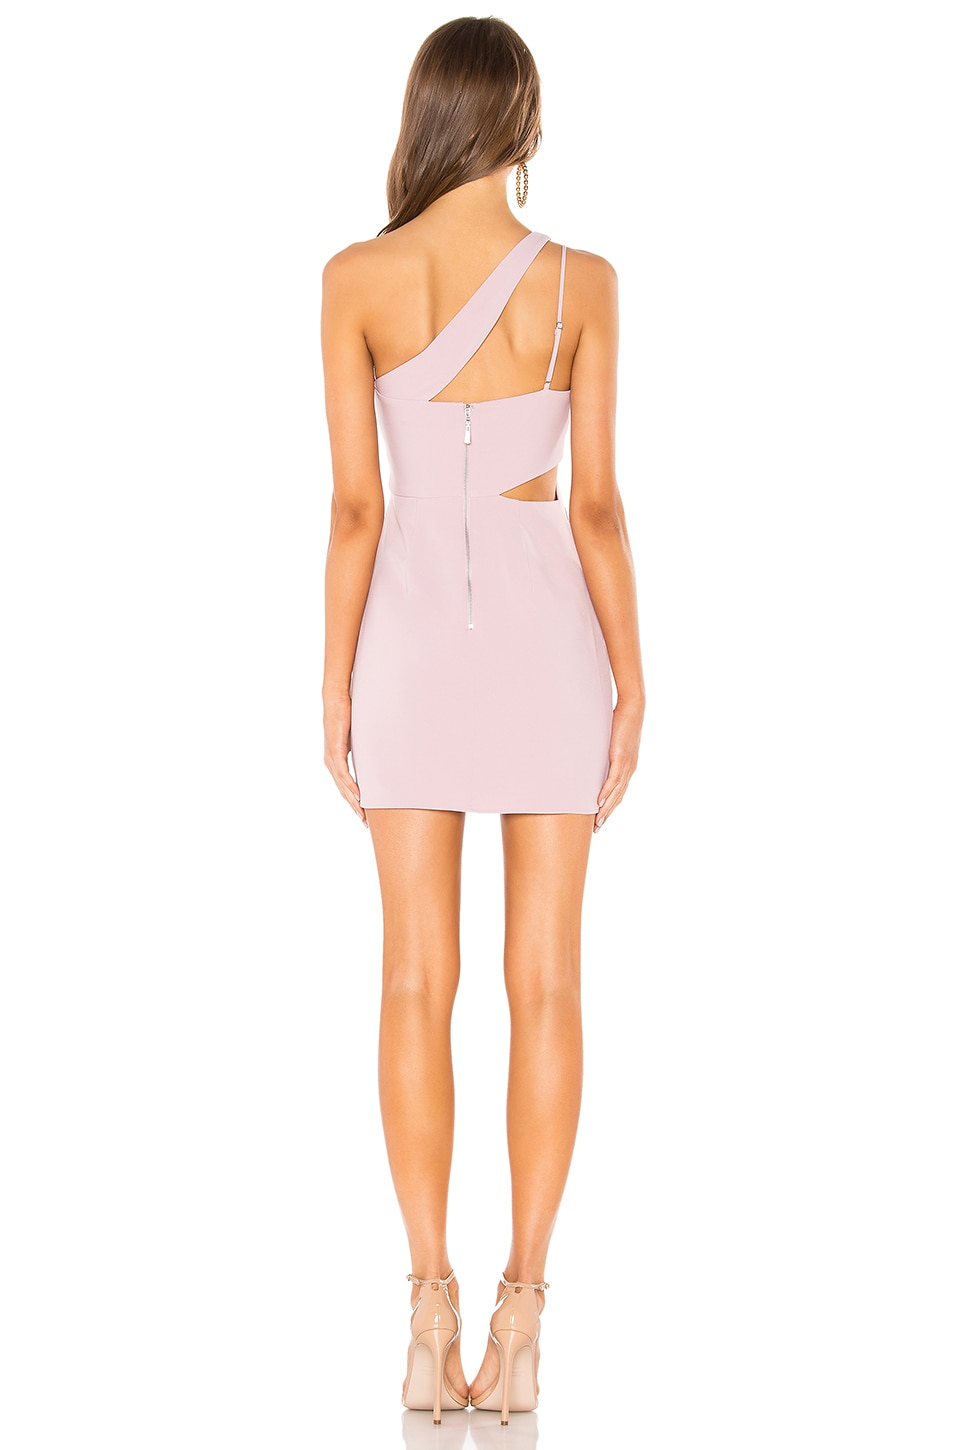 x Naven Chloe Dress, view 3, click to view large image.